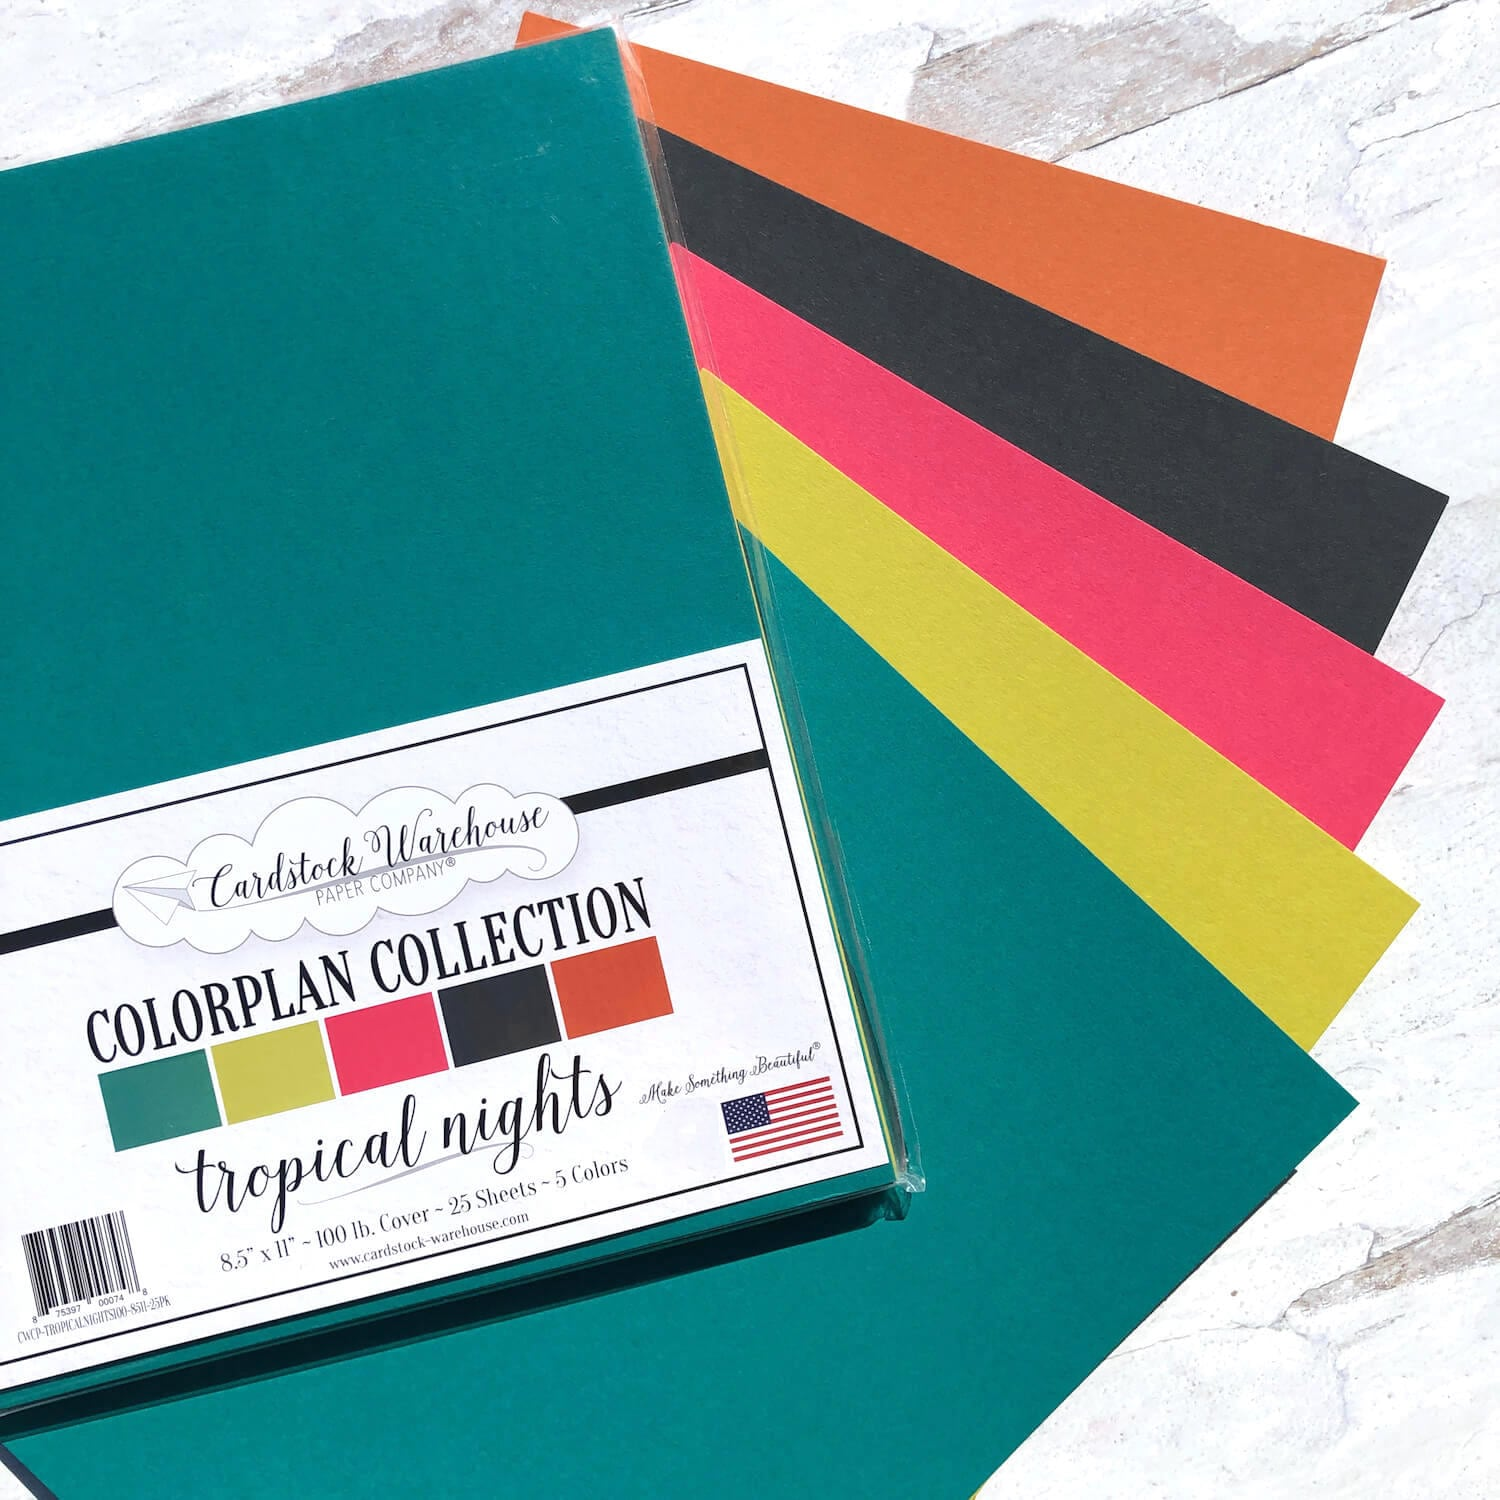 Tropical Nights Colorplan Multi-Pack from Cardstock Warehouse Paper Company